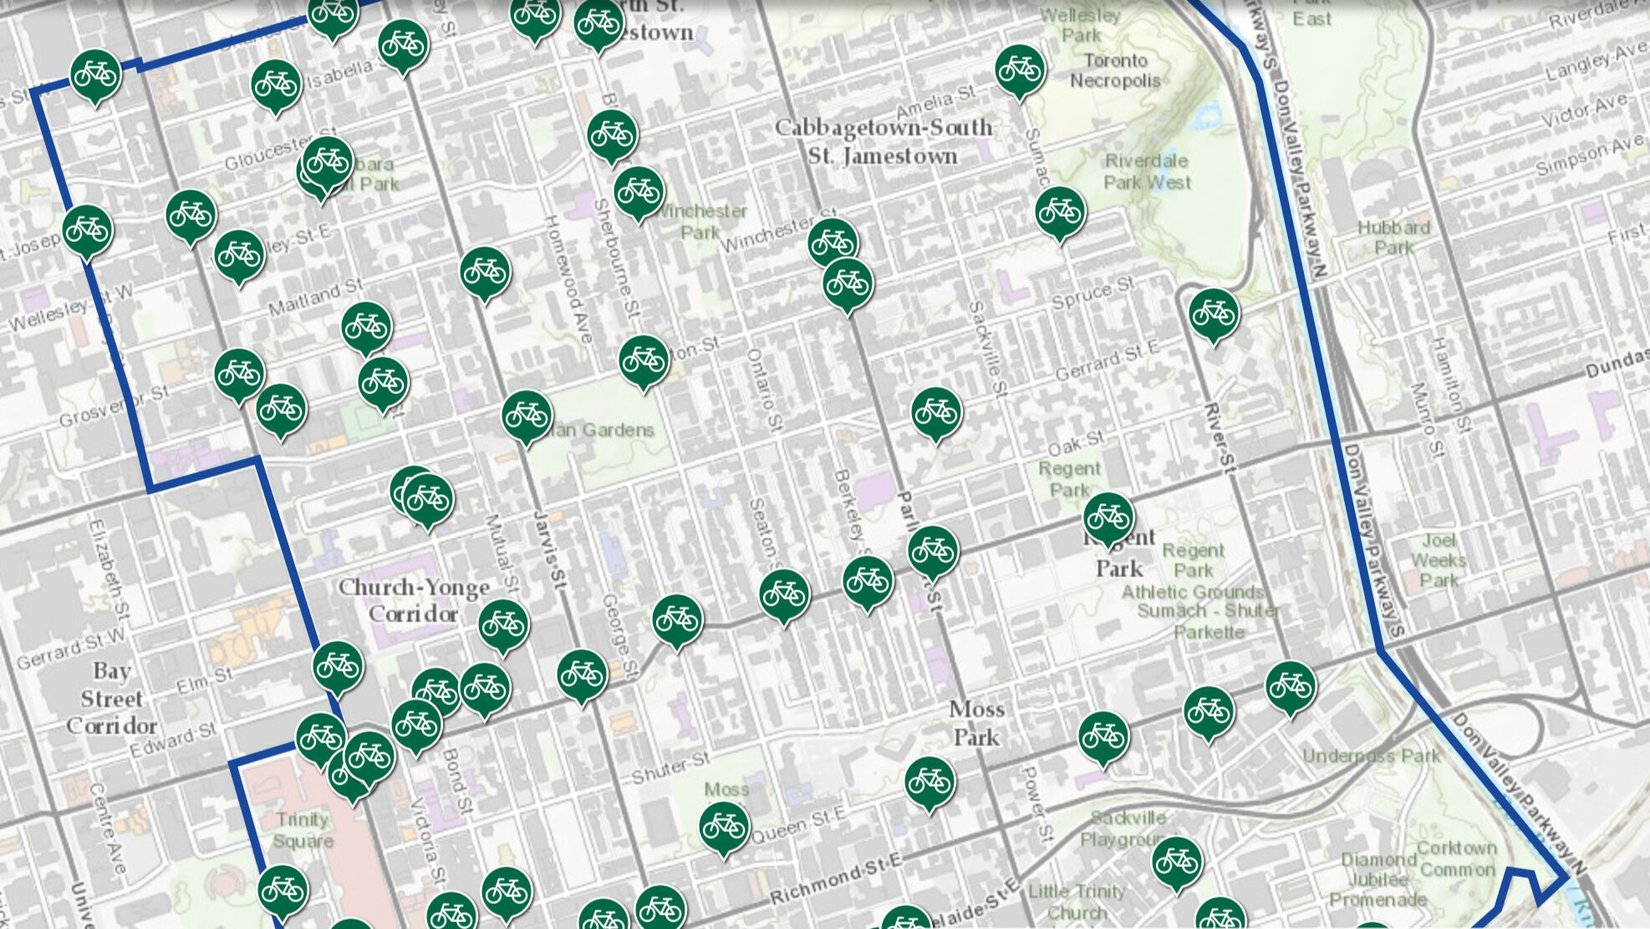 Bike Share - Ward 13